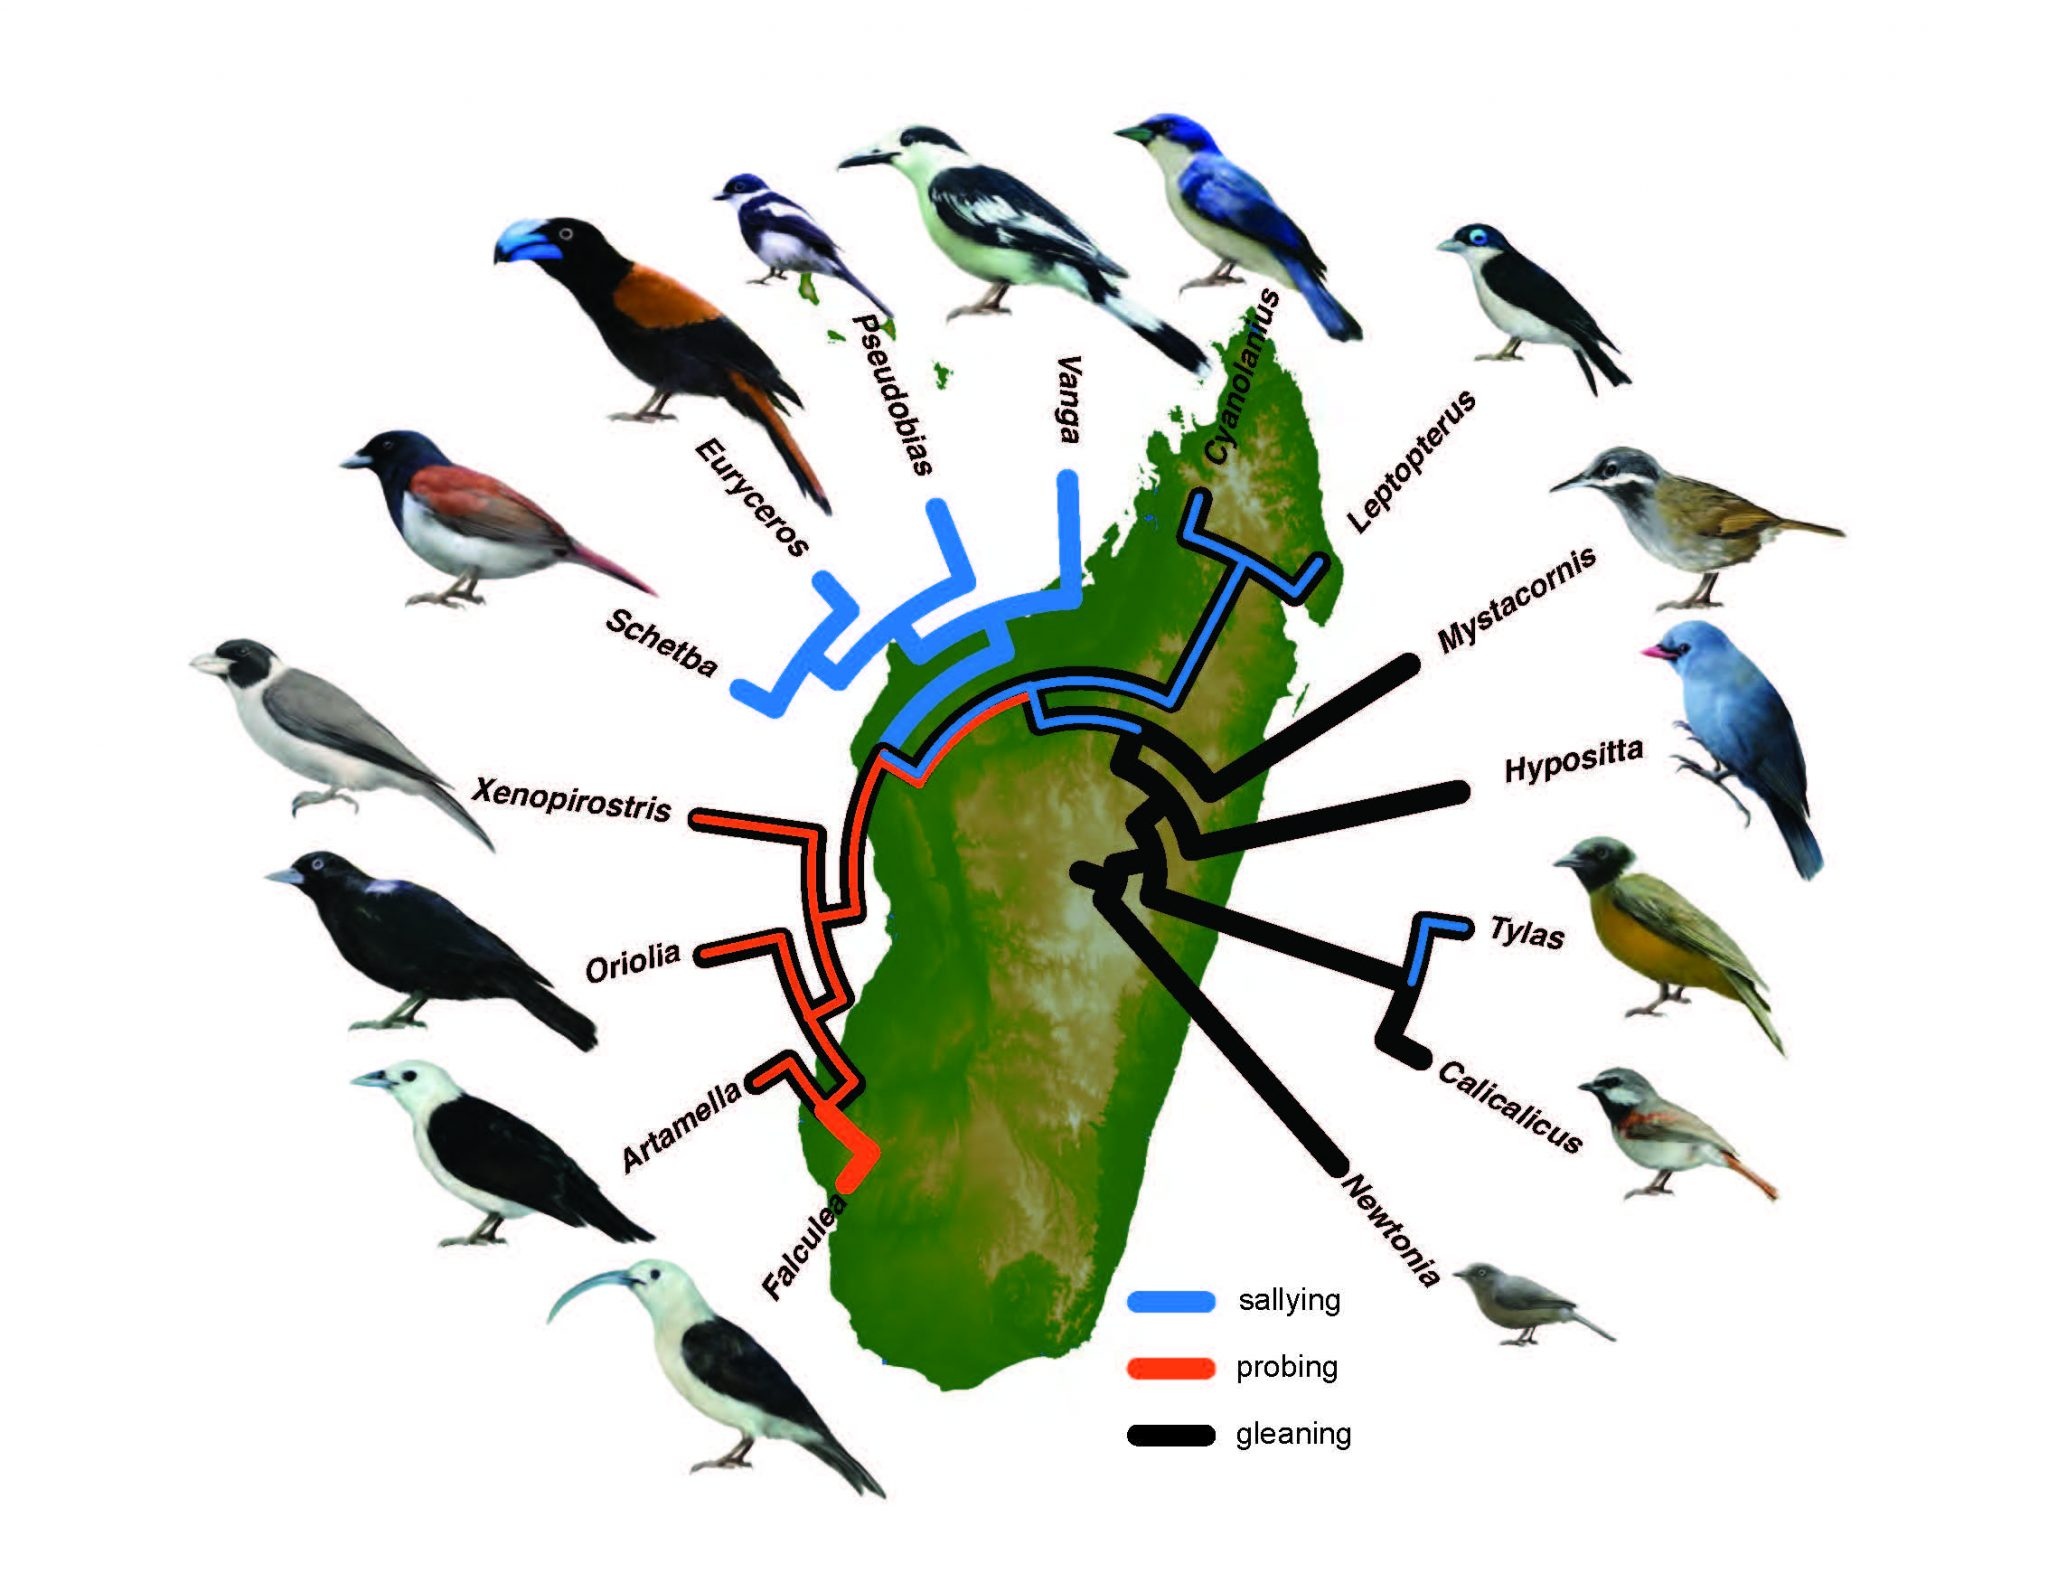 An infographic of bird species in Madagascar